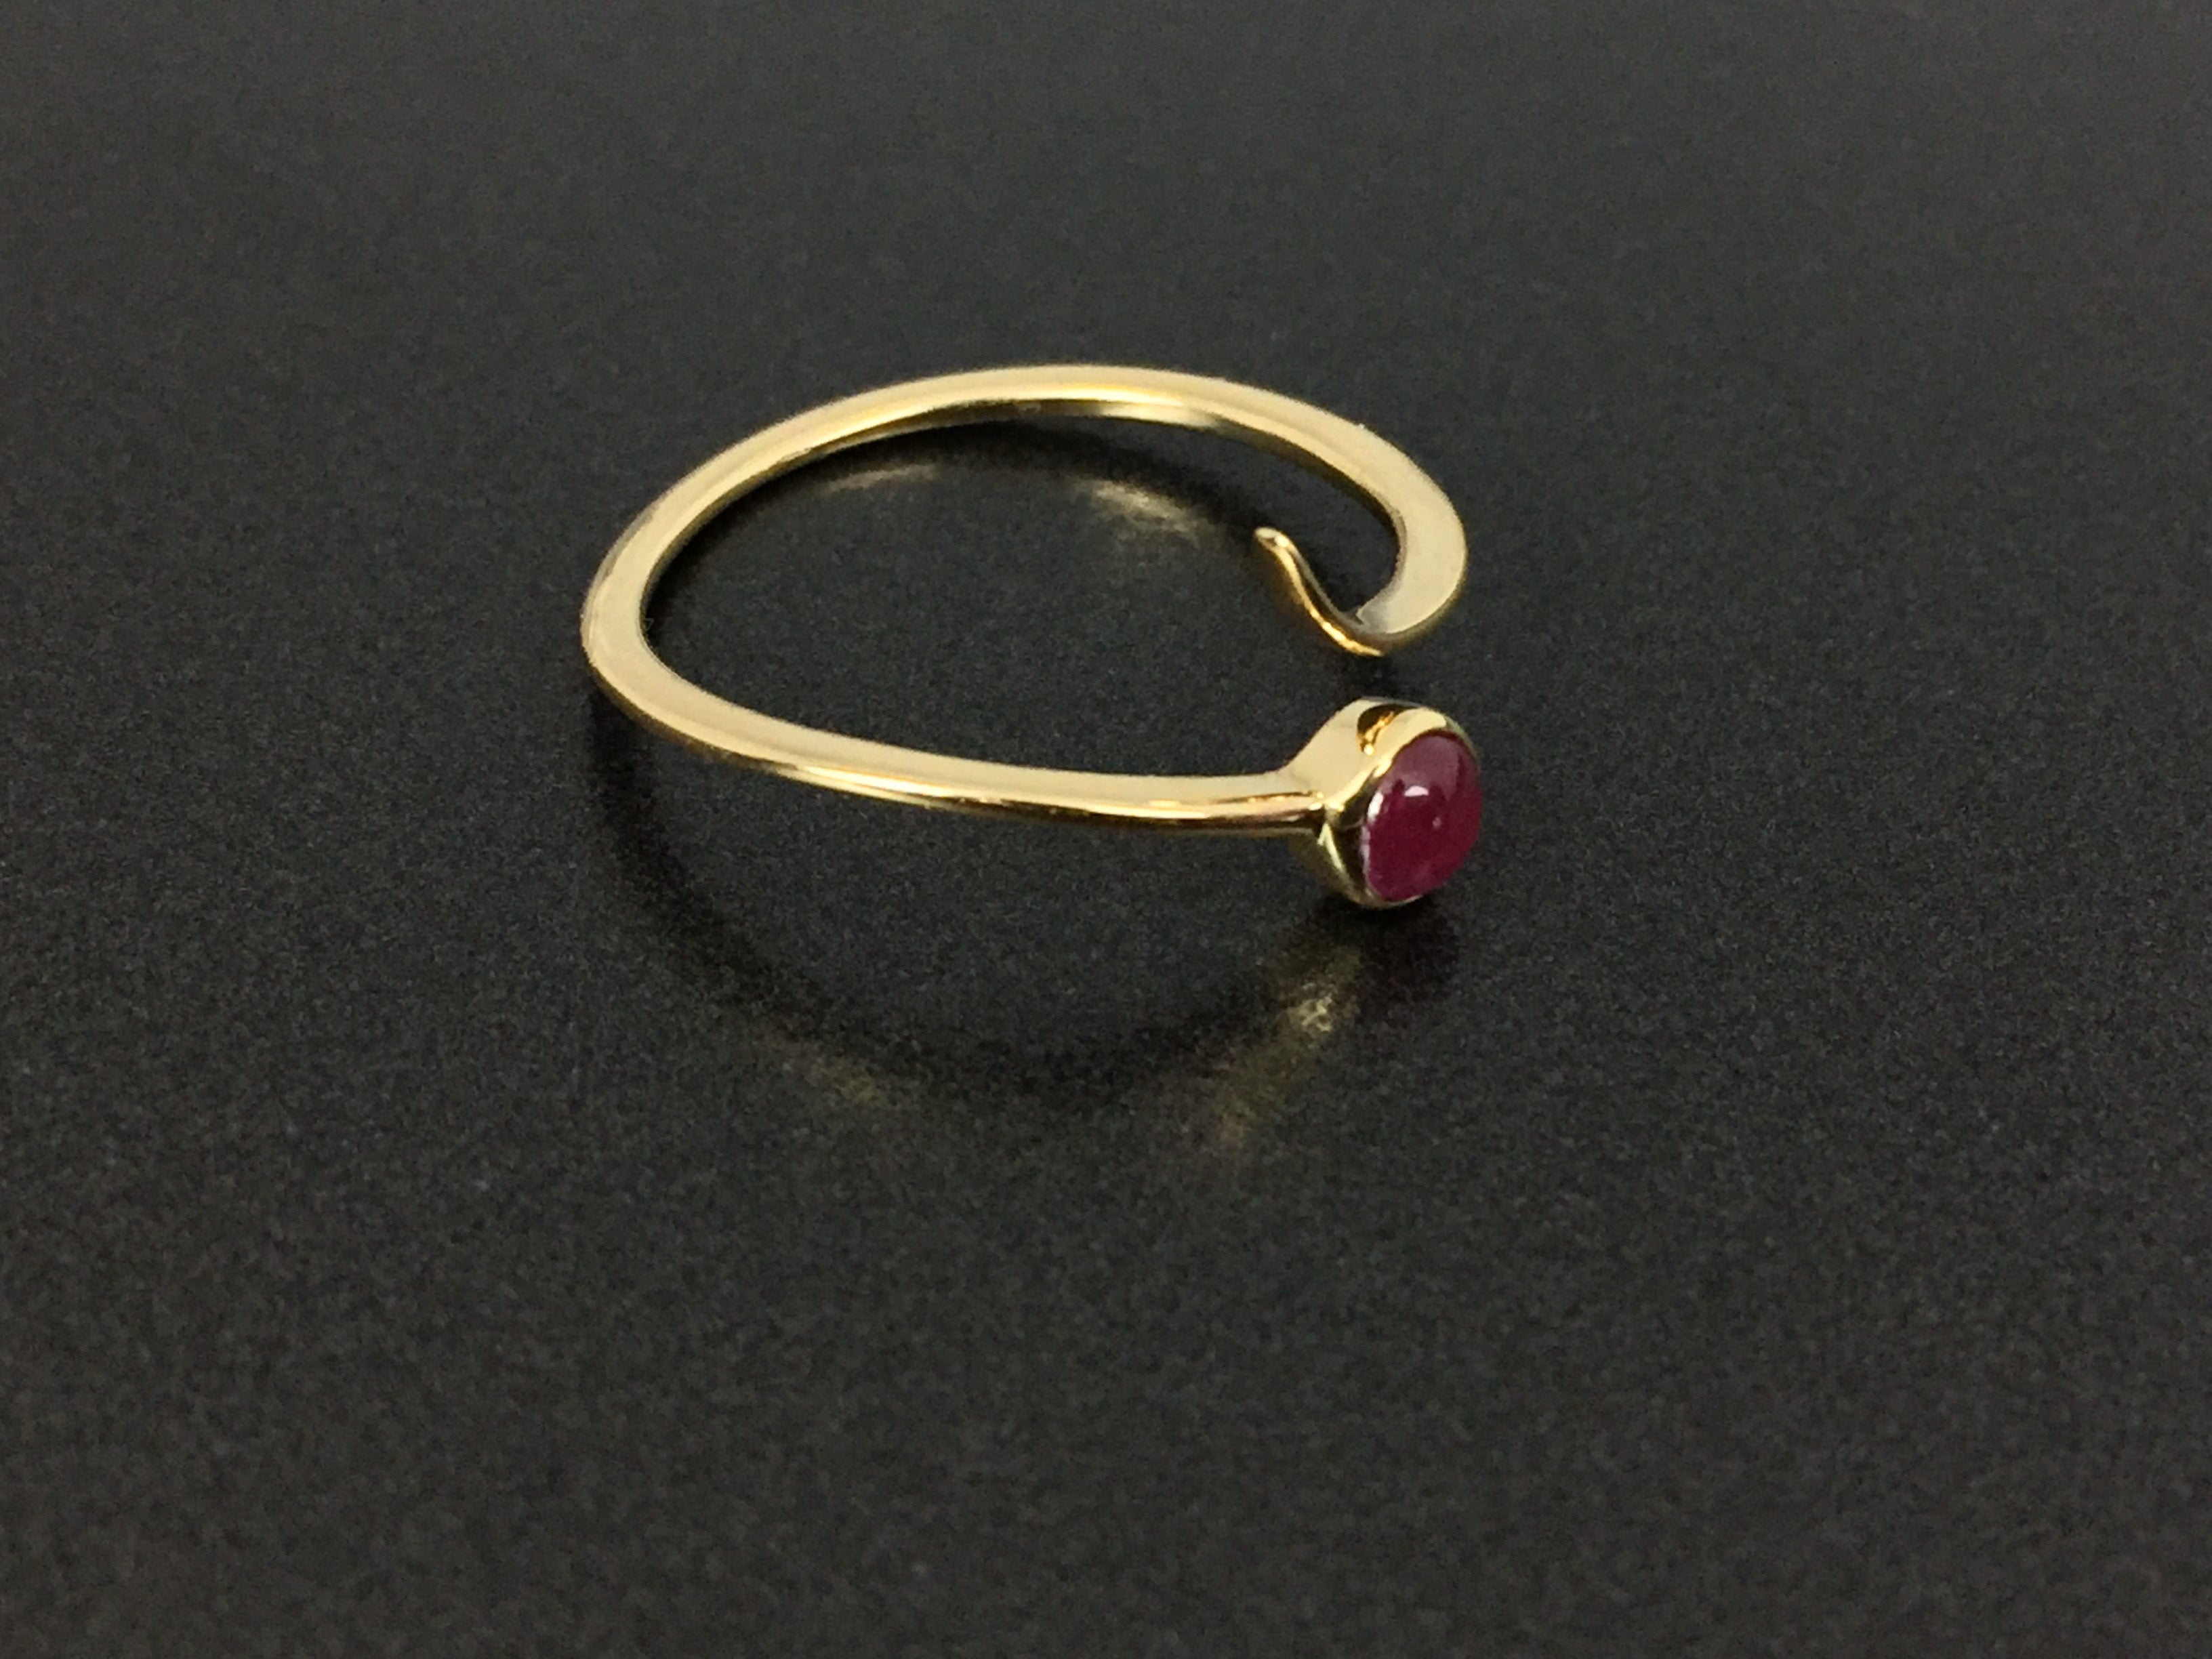 Southwestern Native Style 18K Gold .36ct Ruby Swirl Ring Size 6.75